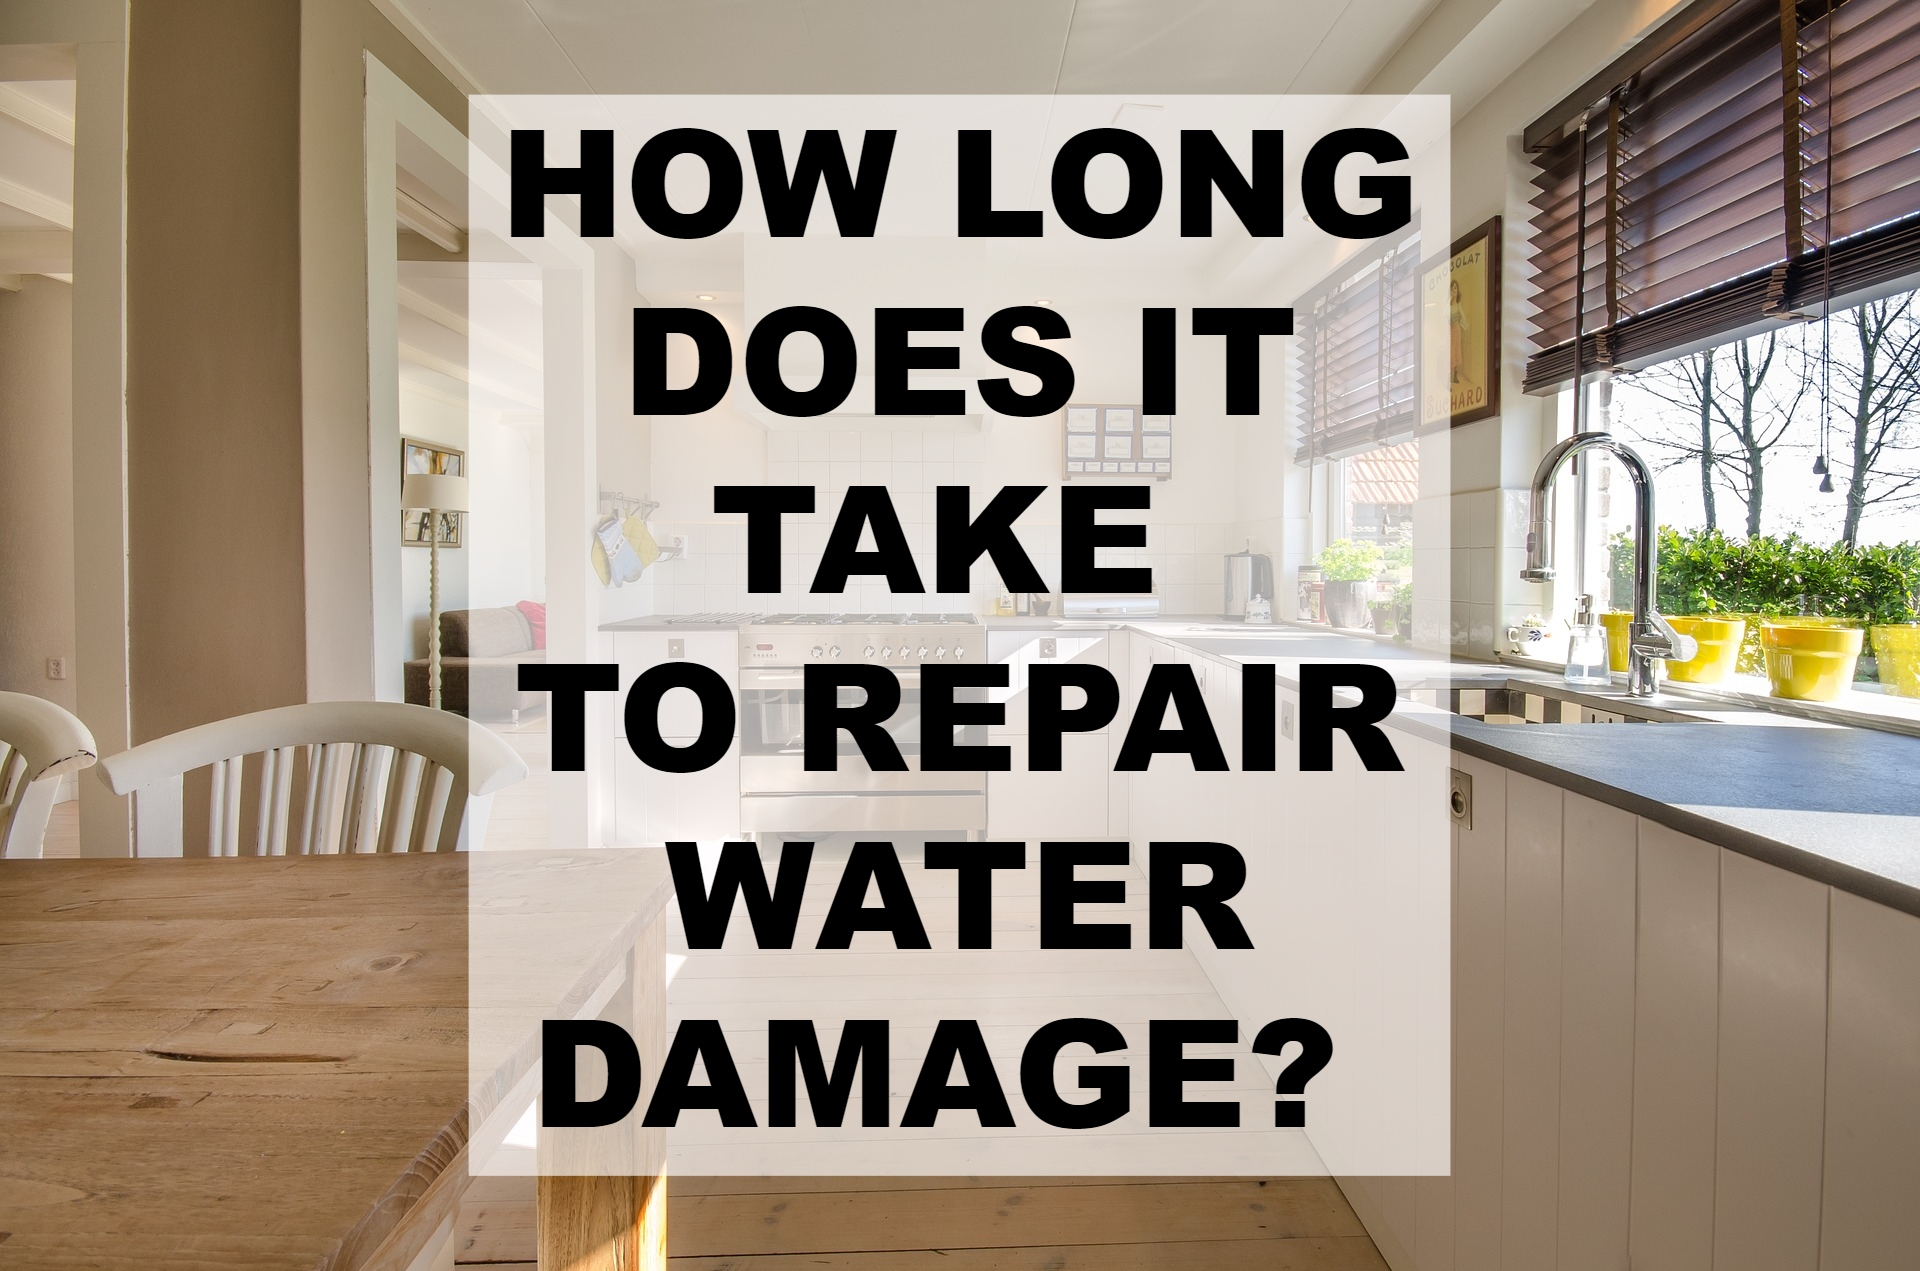 How Long Does It Take to Repair Water Damage?